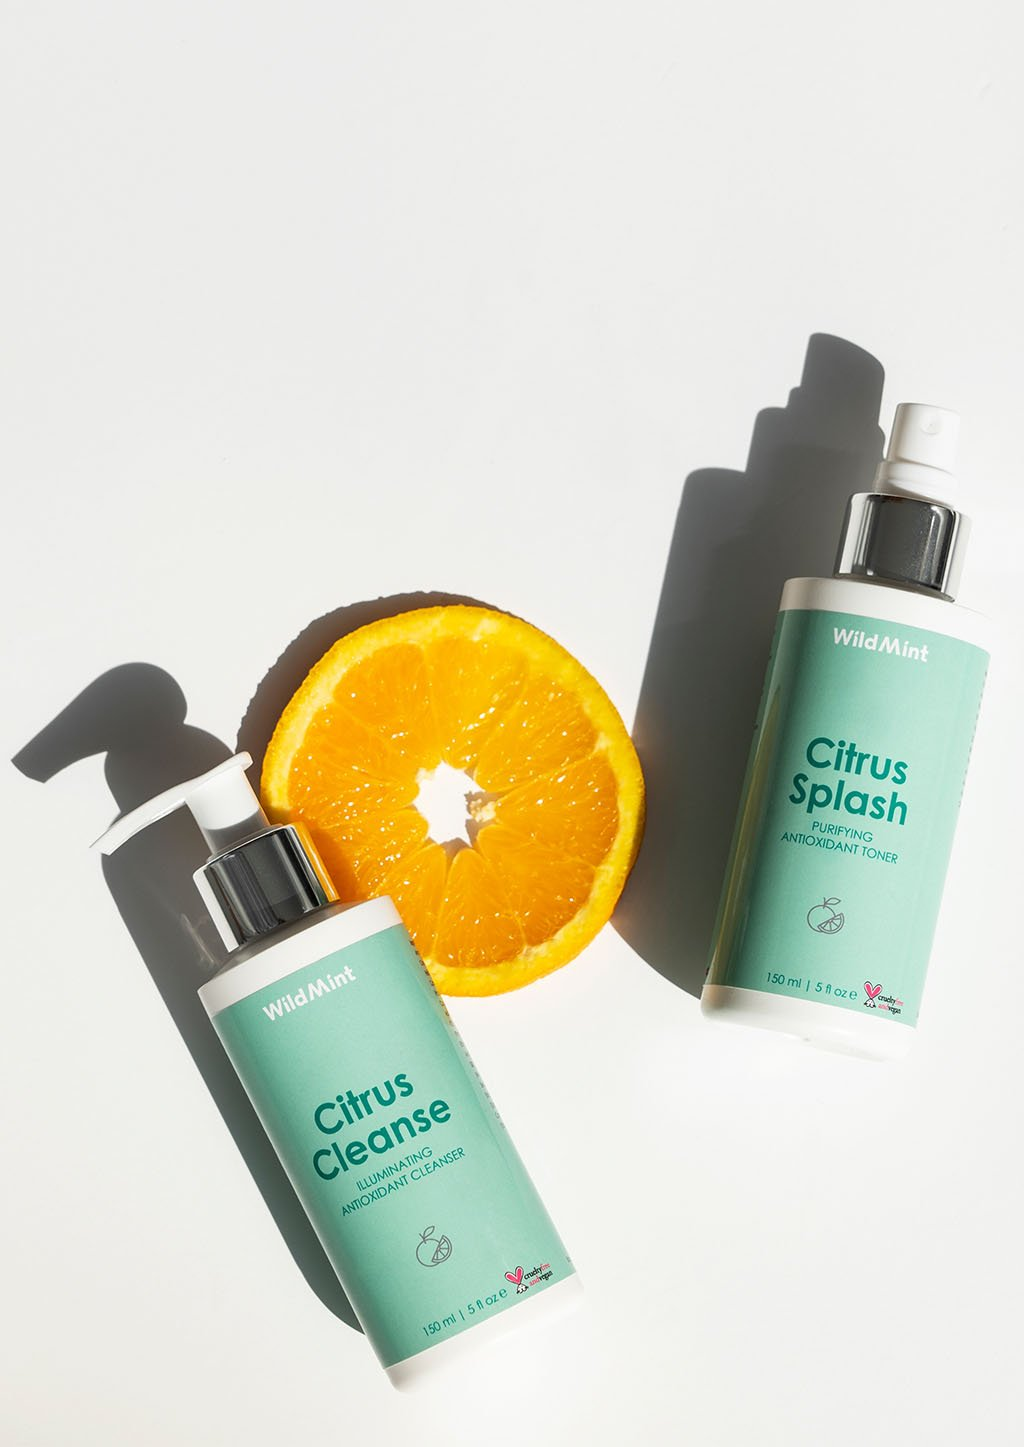 Brighten Up! Vitamin C Duo